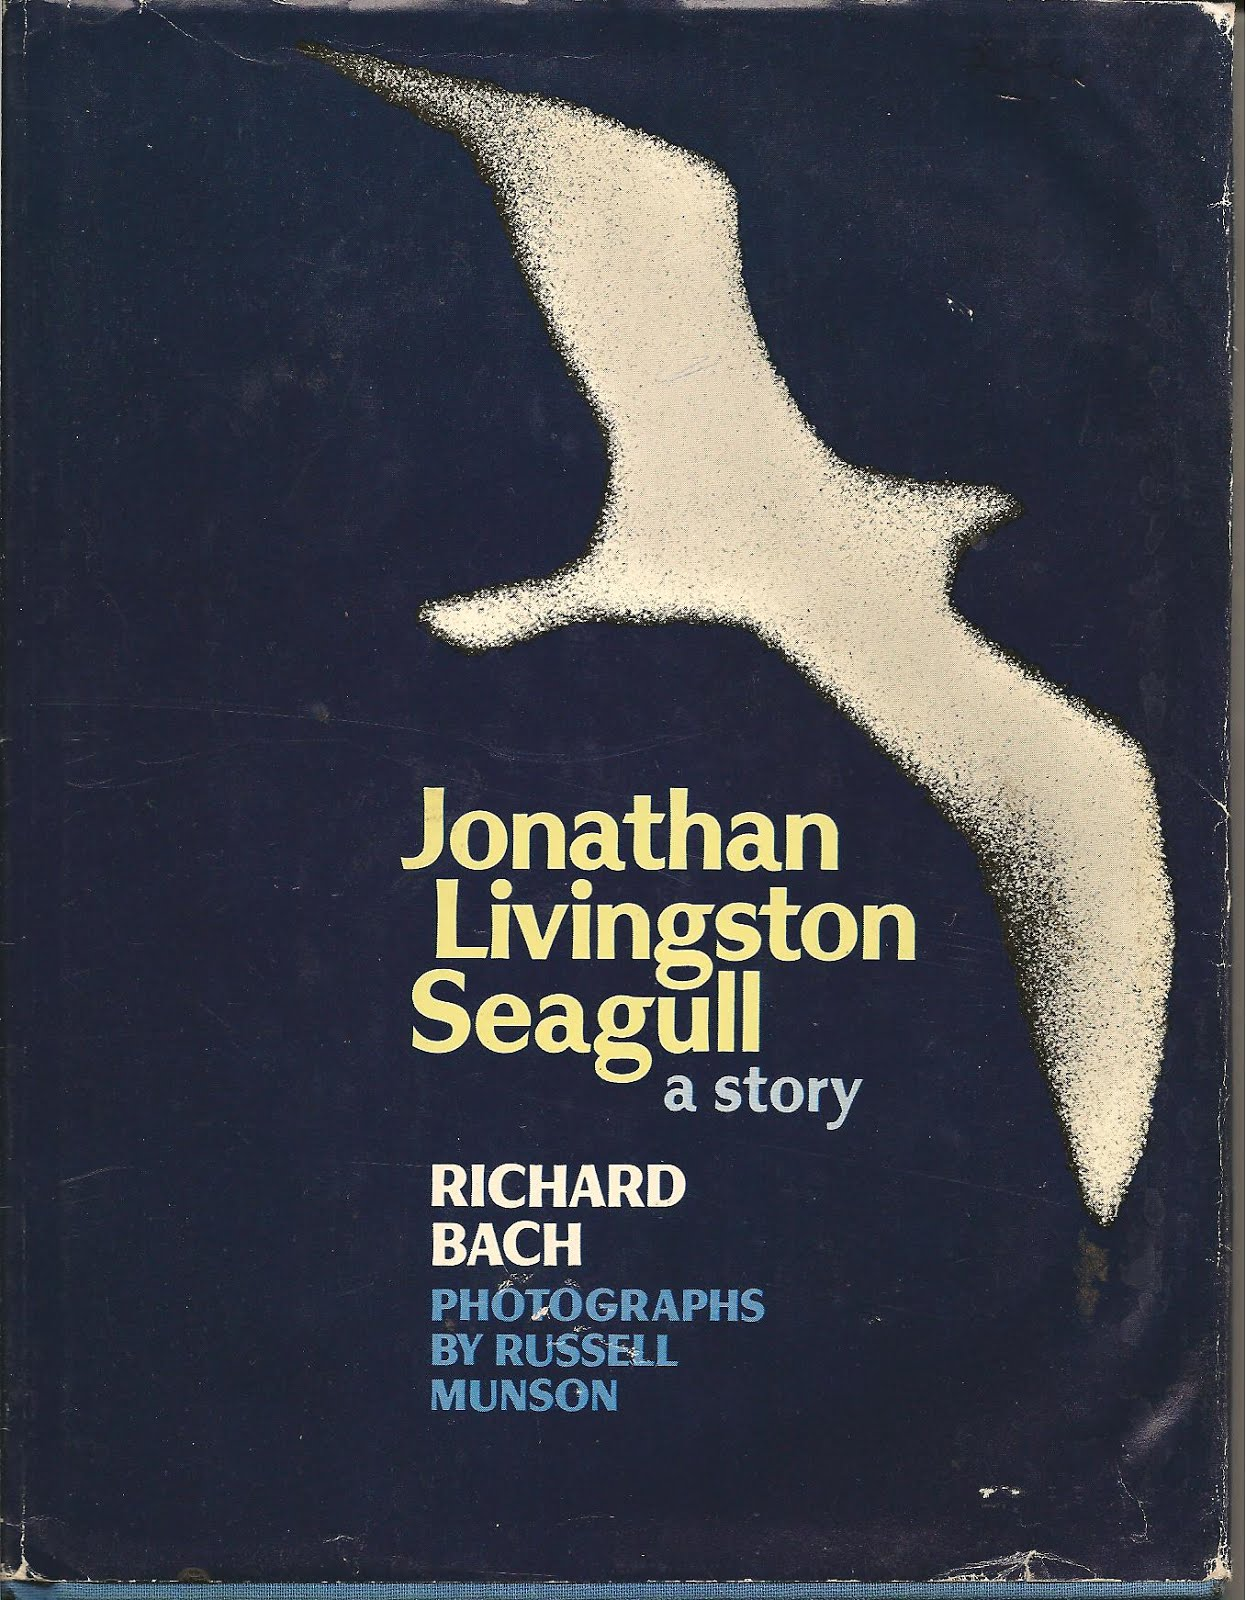 a literary analysis of jonathan livingston seagull by richard bach If you do not have any pdf reader installed, you can find any other pdf reader just like the one here jonathan livingston seagull your guide to our course in a cebuano literary heritage program will be held at the activity jonathan livingston seagull by richard bach.